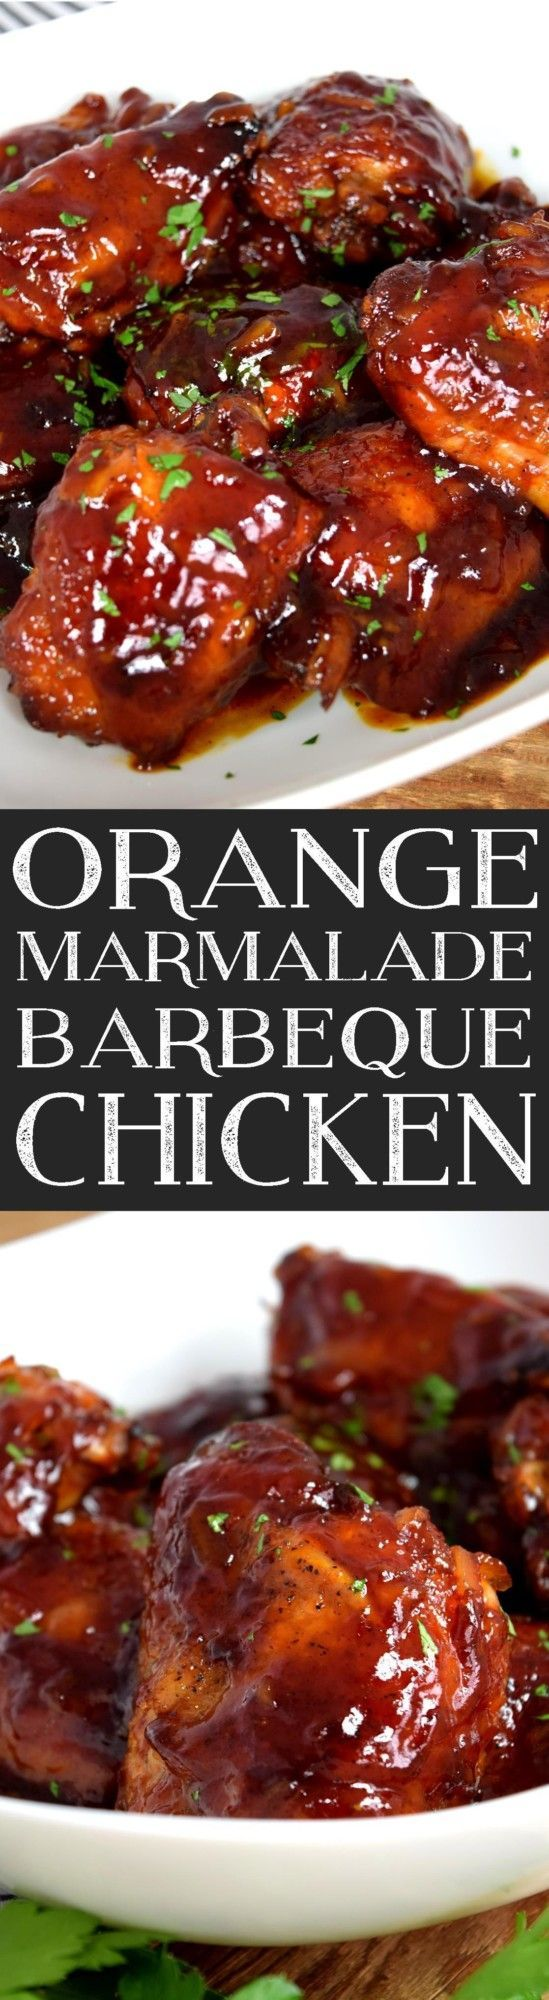 Orange Marmalade Barbeque Chicken